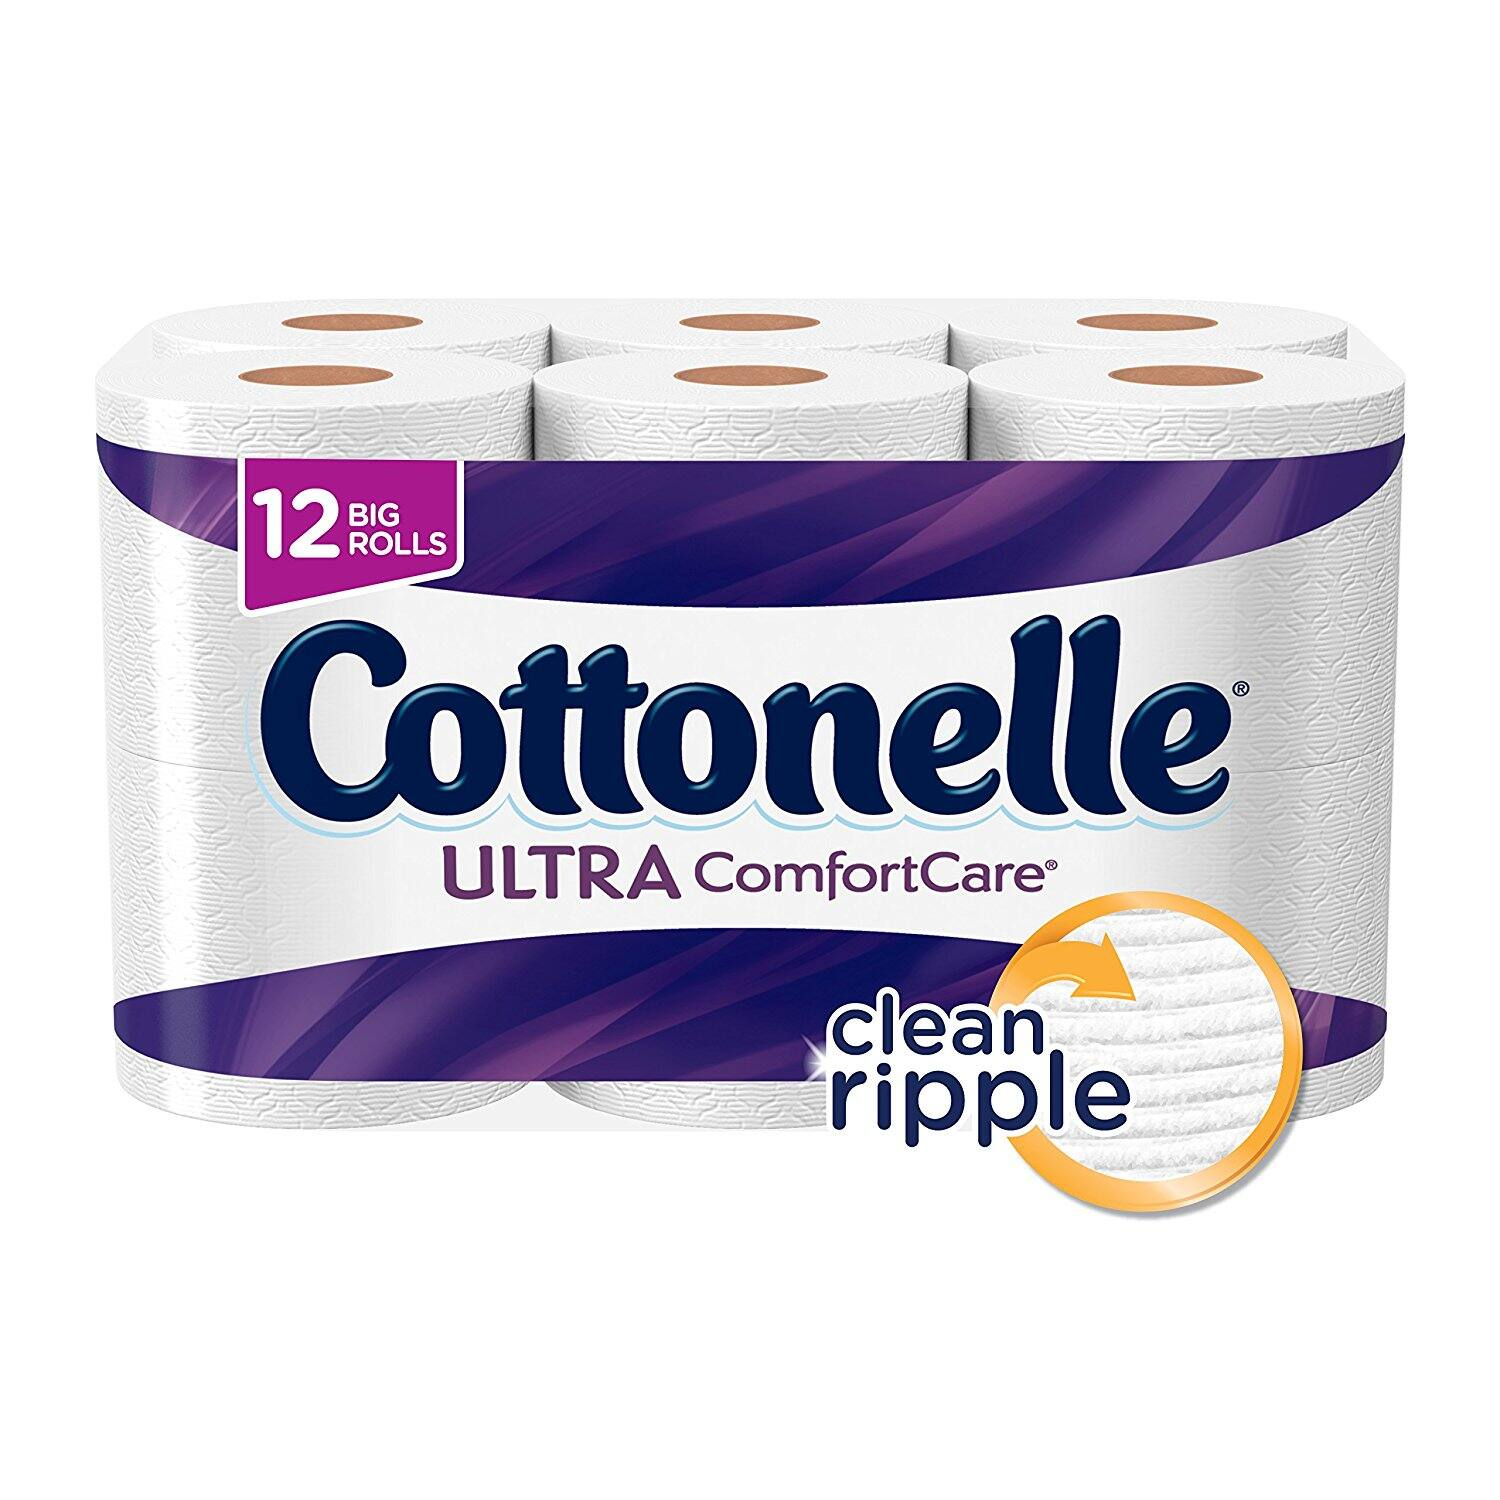 Cottonelle Ultra ComfortCare Big Roll Toilet Paper, 12 Rolls $5.19 Add On Item at Amazon